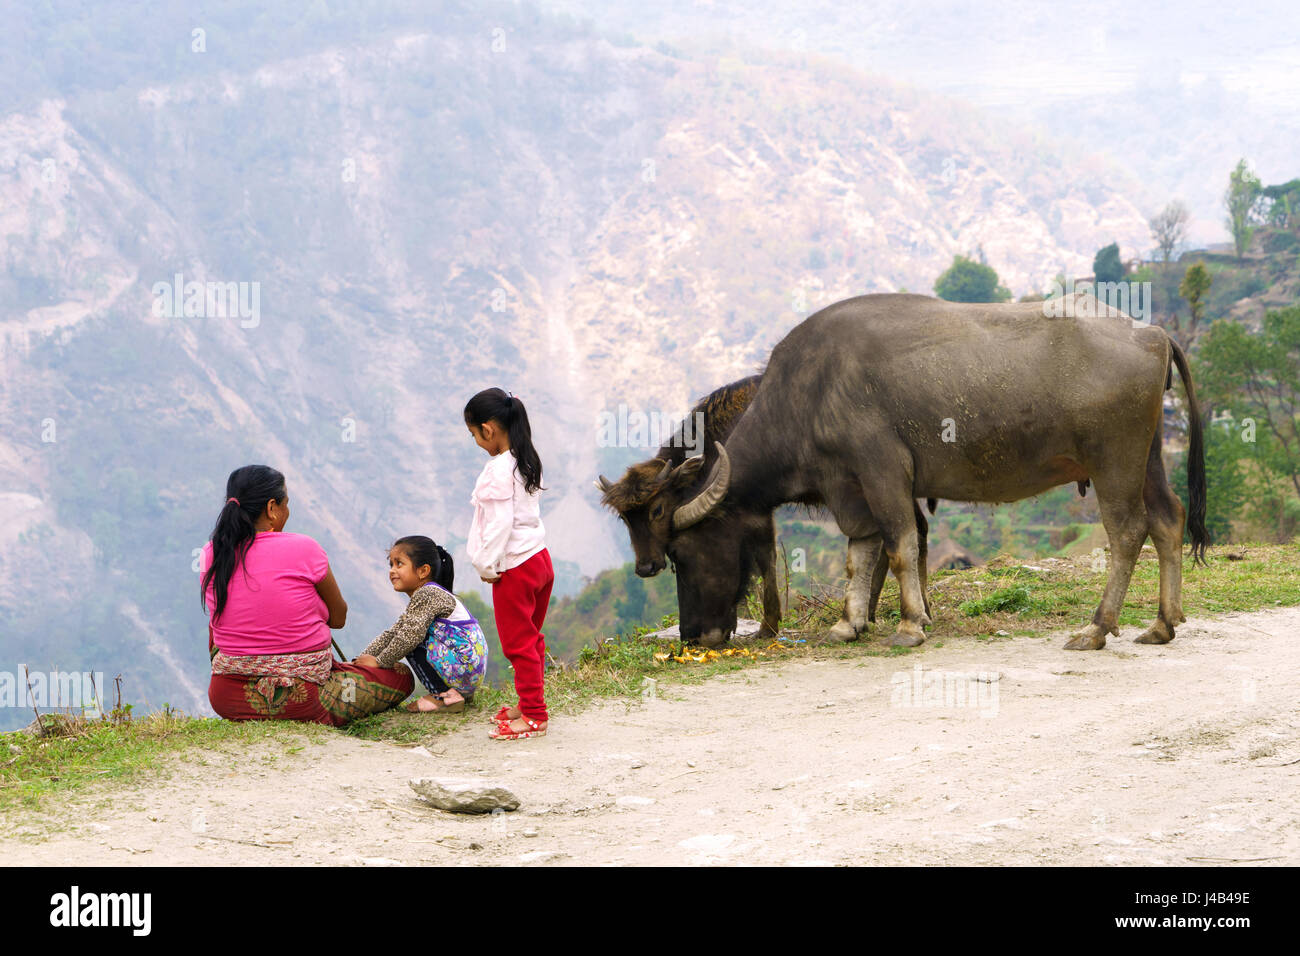 nepalese-woman-with-her-daughters-near-landruk-annapurna-region-J4B49E.jpg